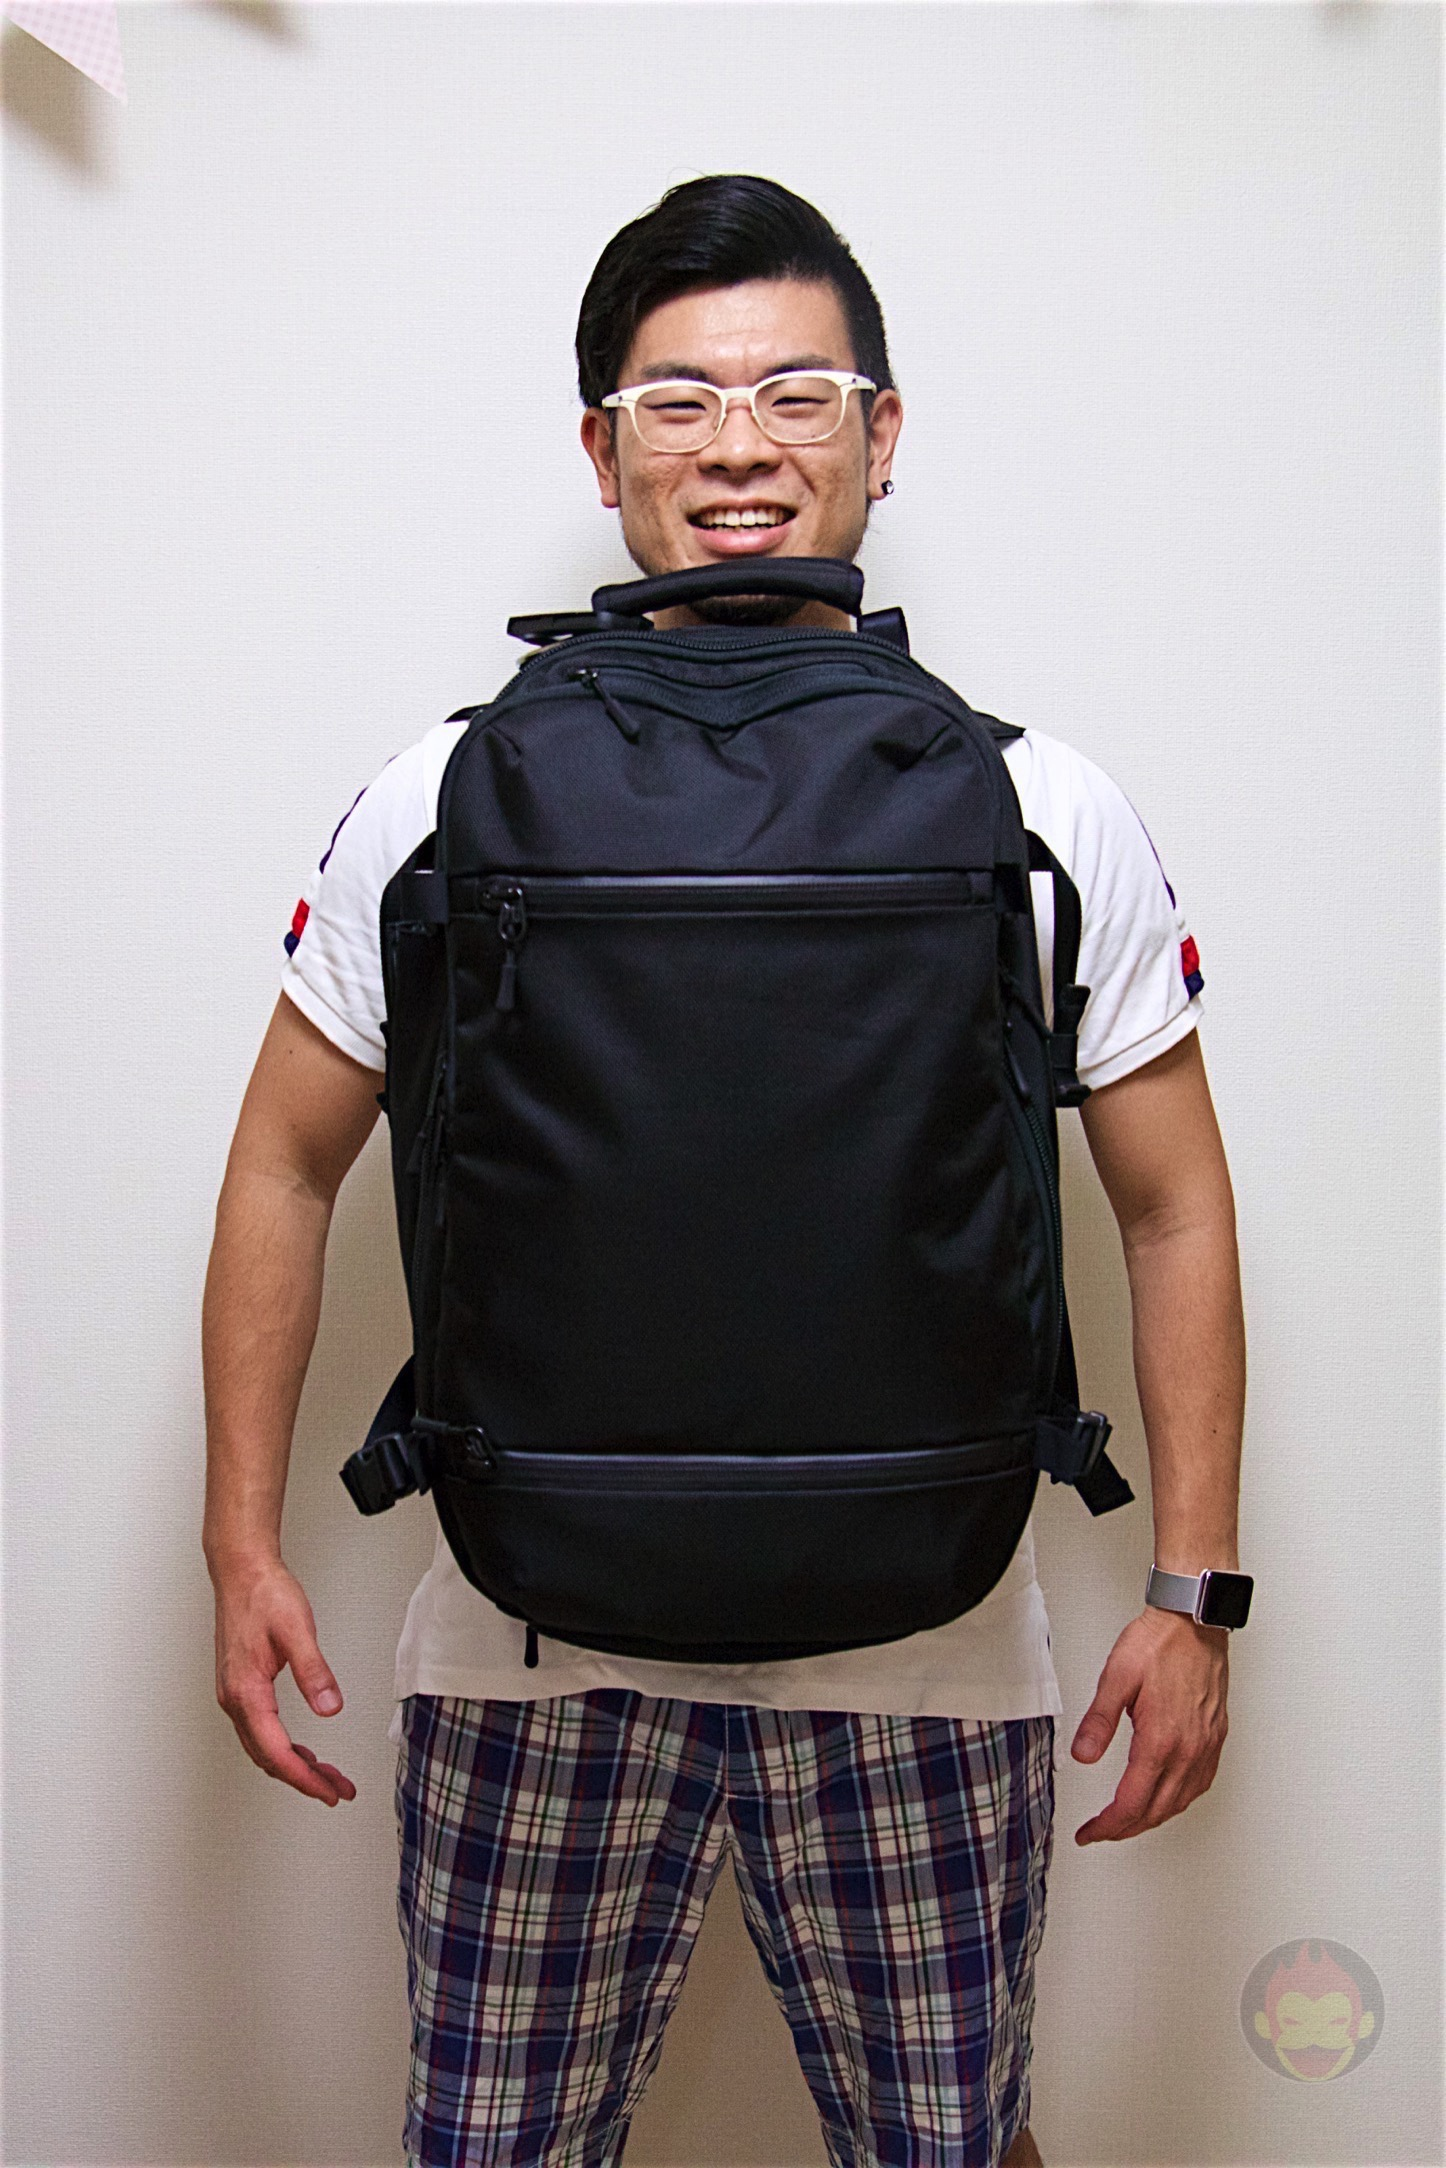 Aer-Travel-BackPack-on-Kickstarter-41.jpg